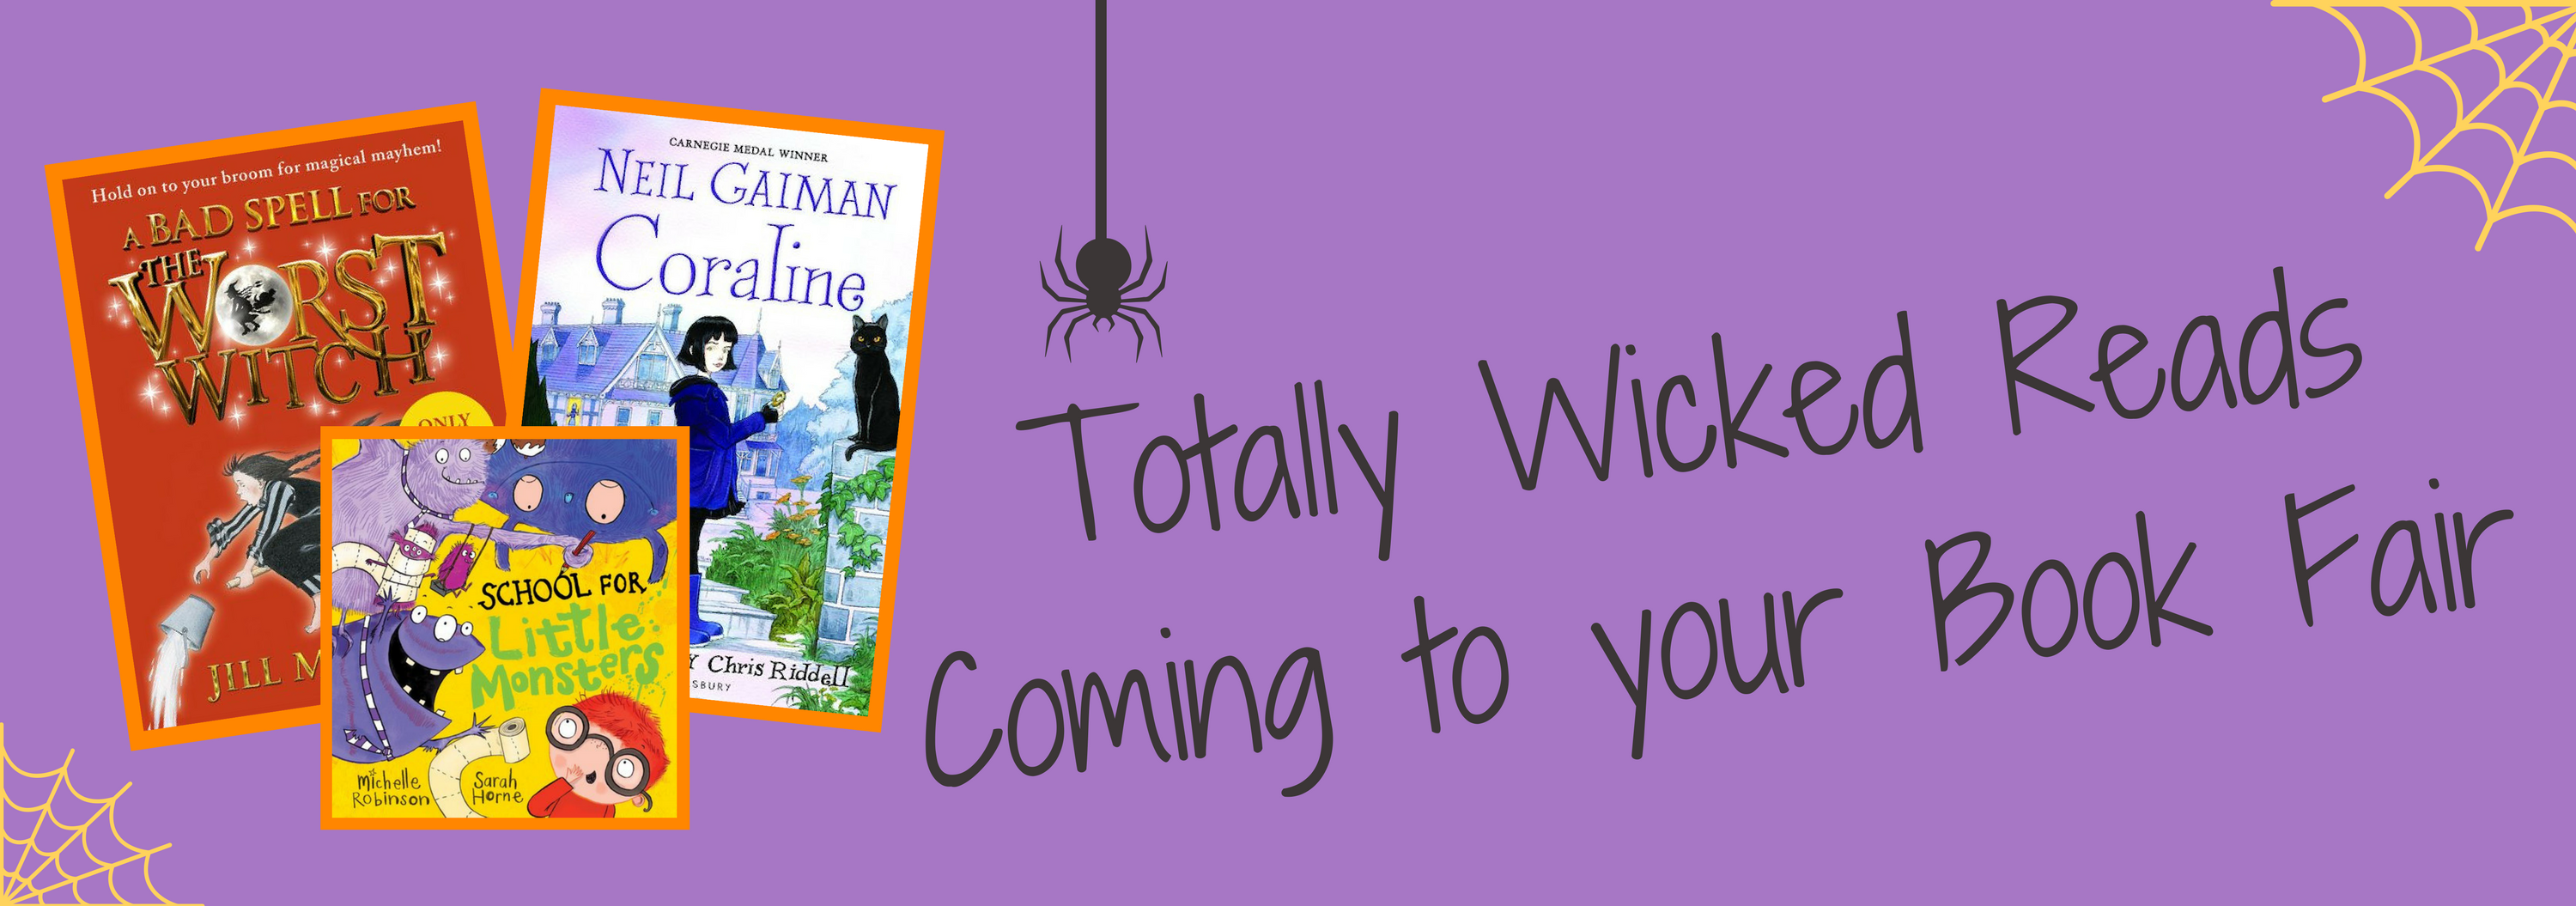 Totally wicked reads coming to your Book Fair